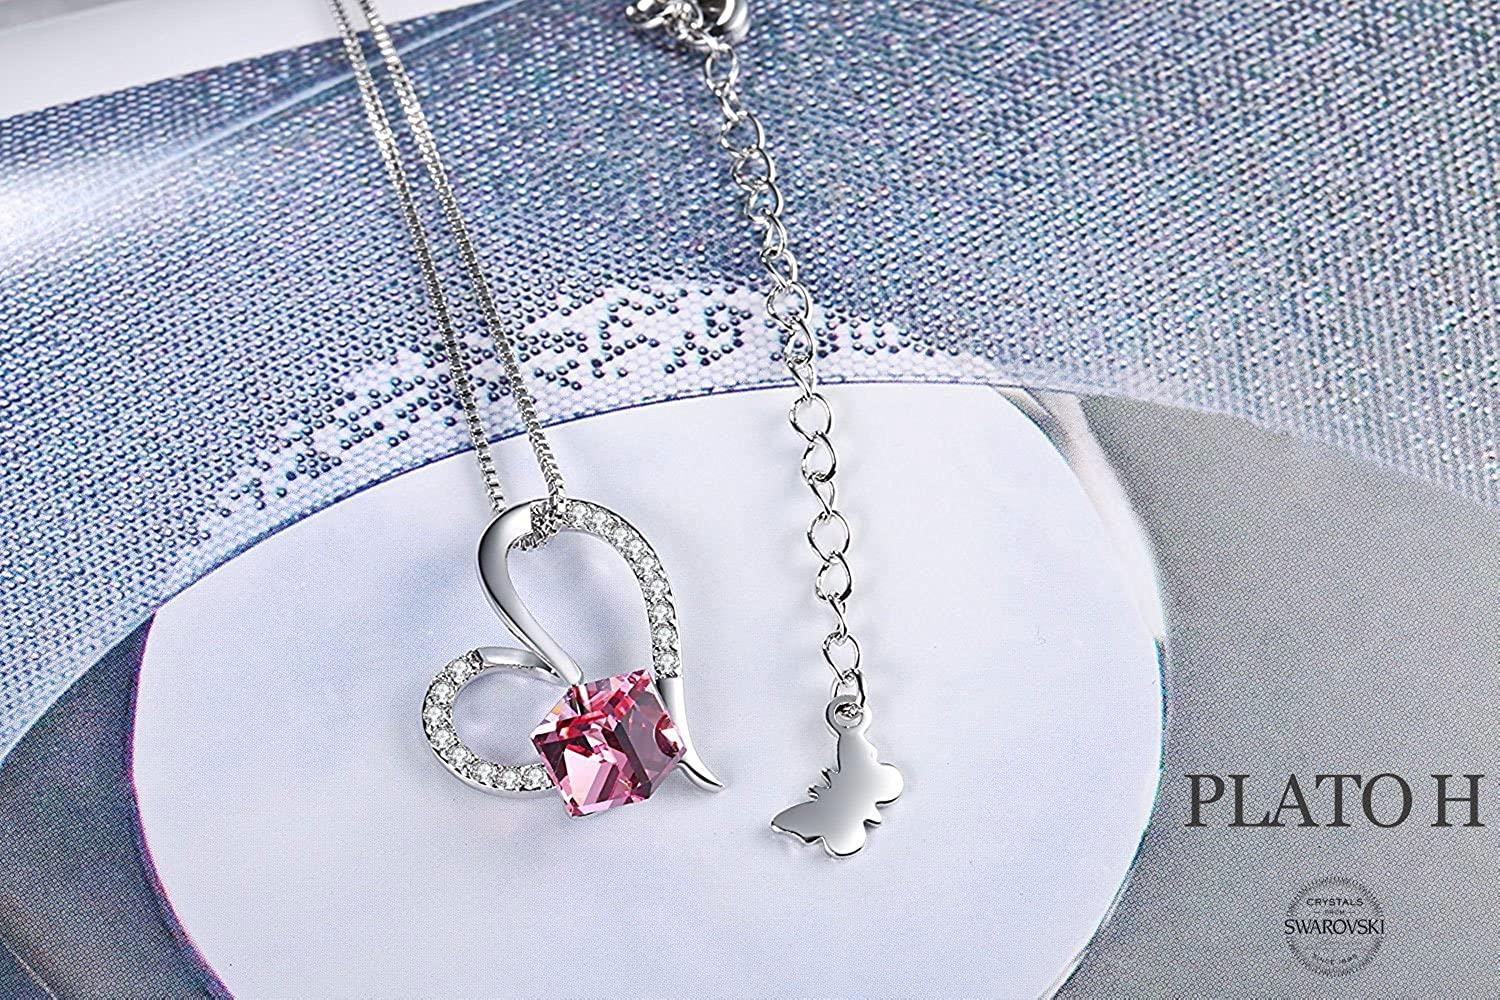 PLATO H Purple Pink Crystal Heart Necklace for Woman Heart Color Changing Necklace with Swarovski Crystal, Heart Birthstone Necklace Birthday Gifts for Girlfriend, Wife, Mom or Daughter